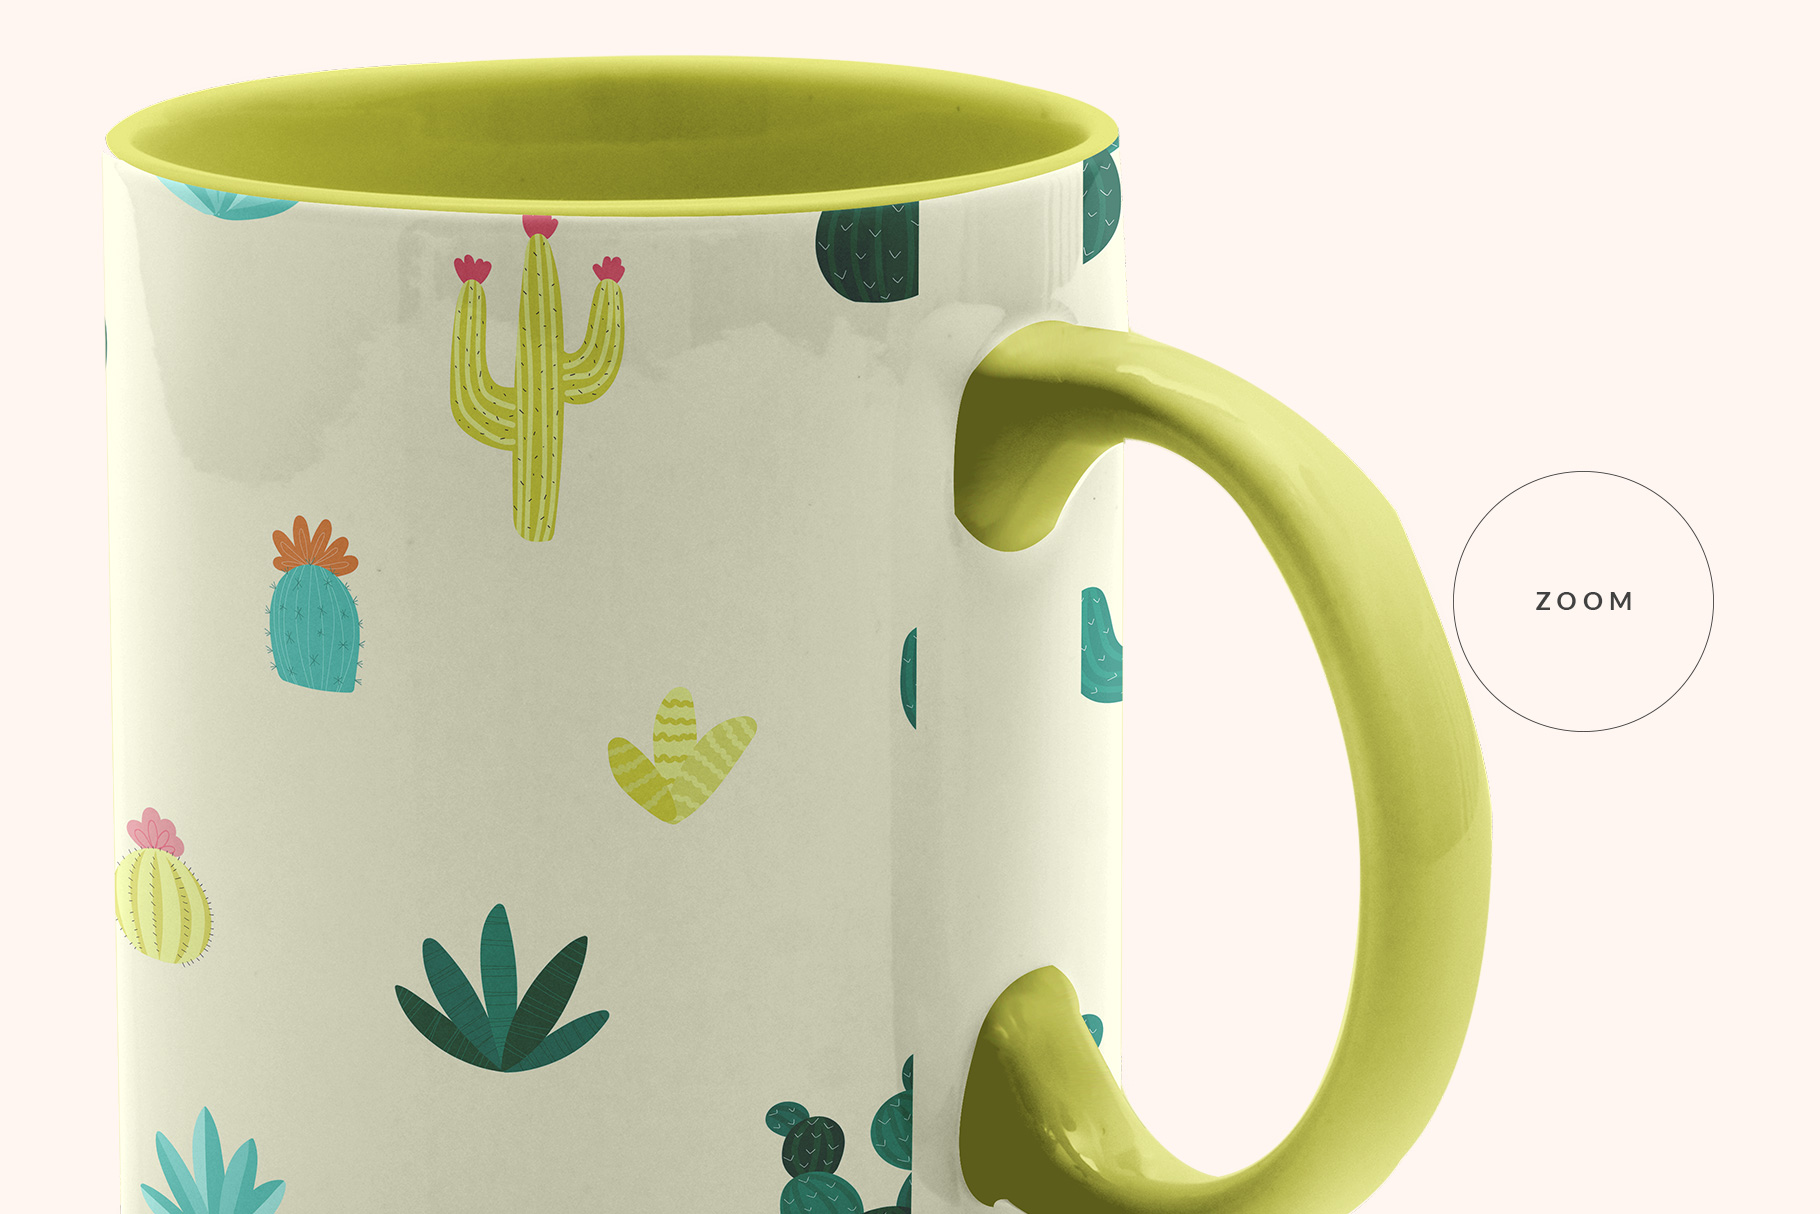 zoomed in image of the ceramic coffee mugs mockup set